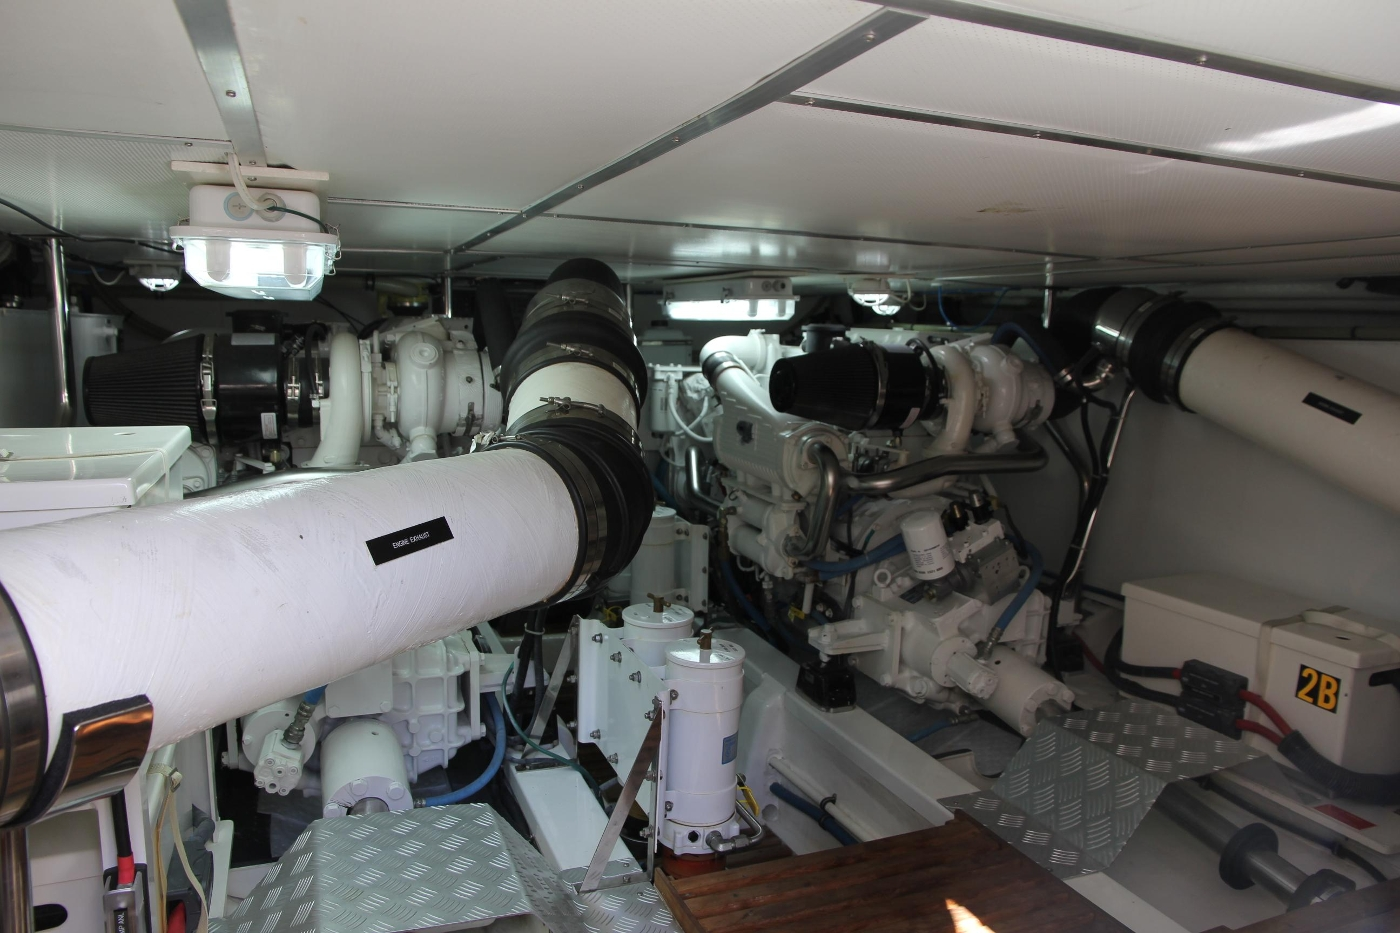 2009 Grand Banks 47 Europa, Engine Room Looking Forward